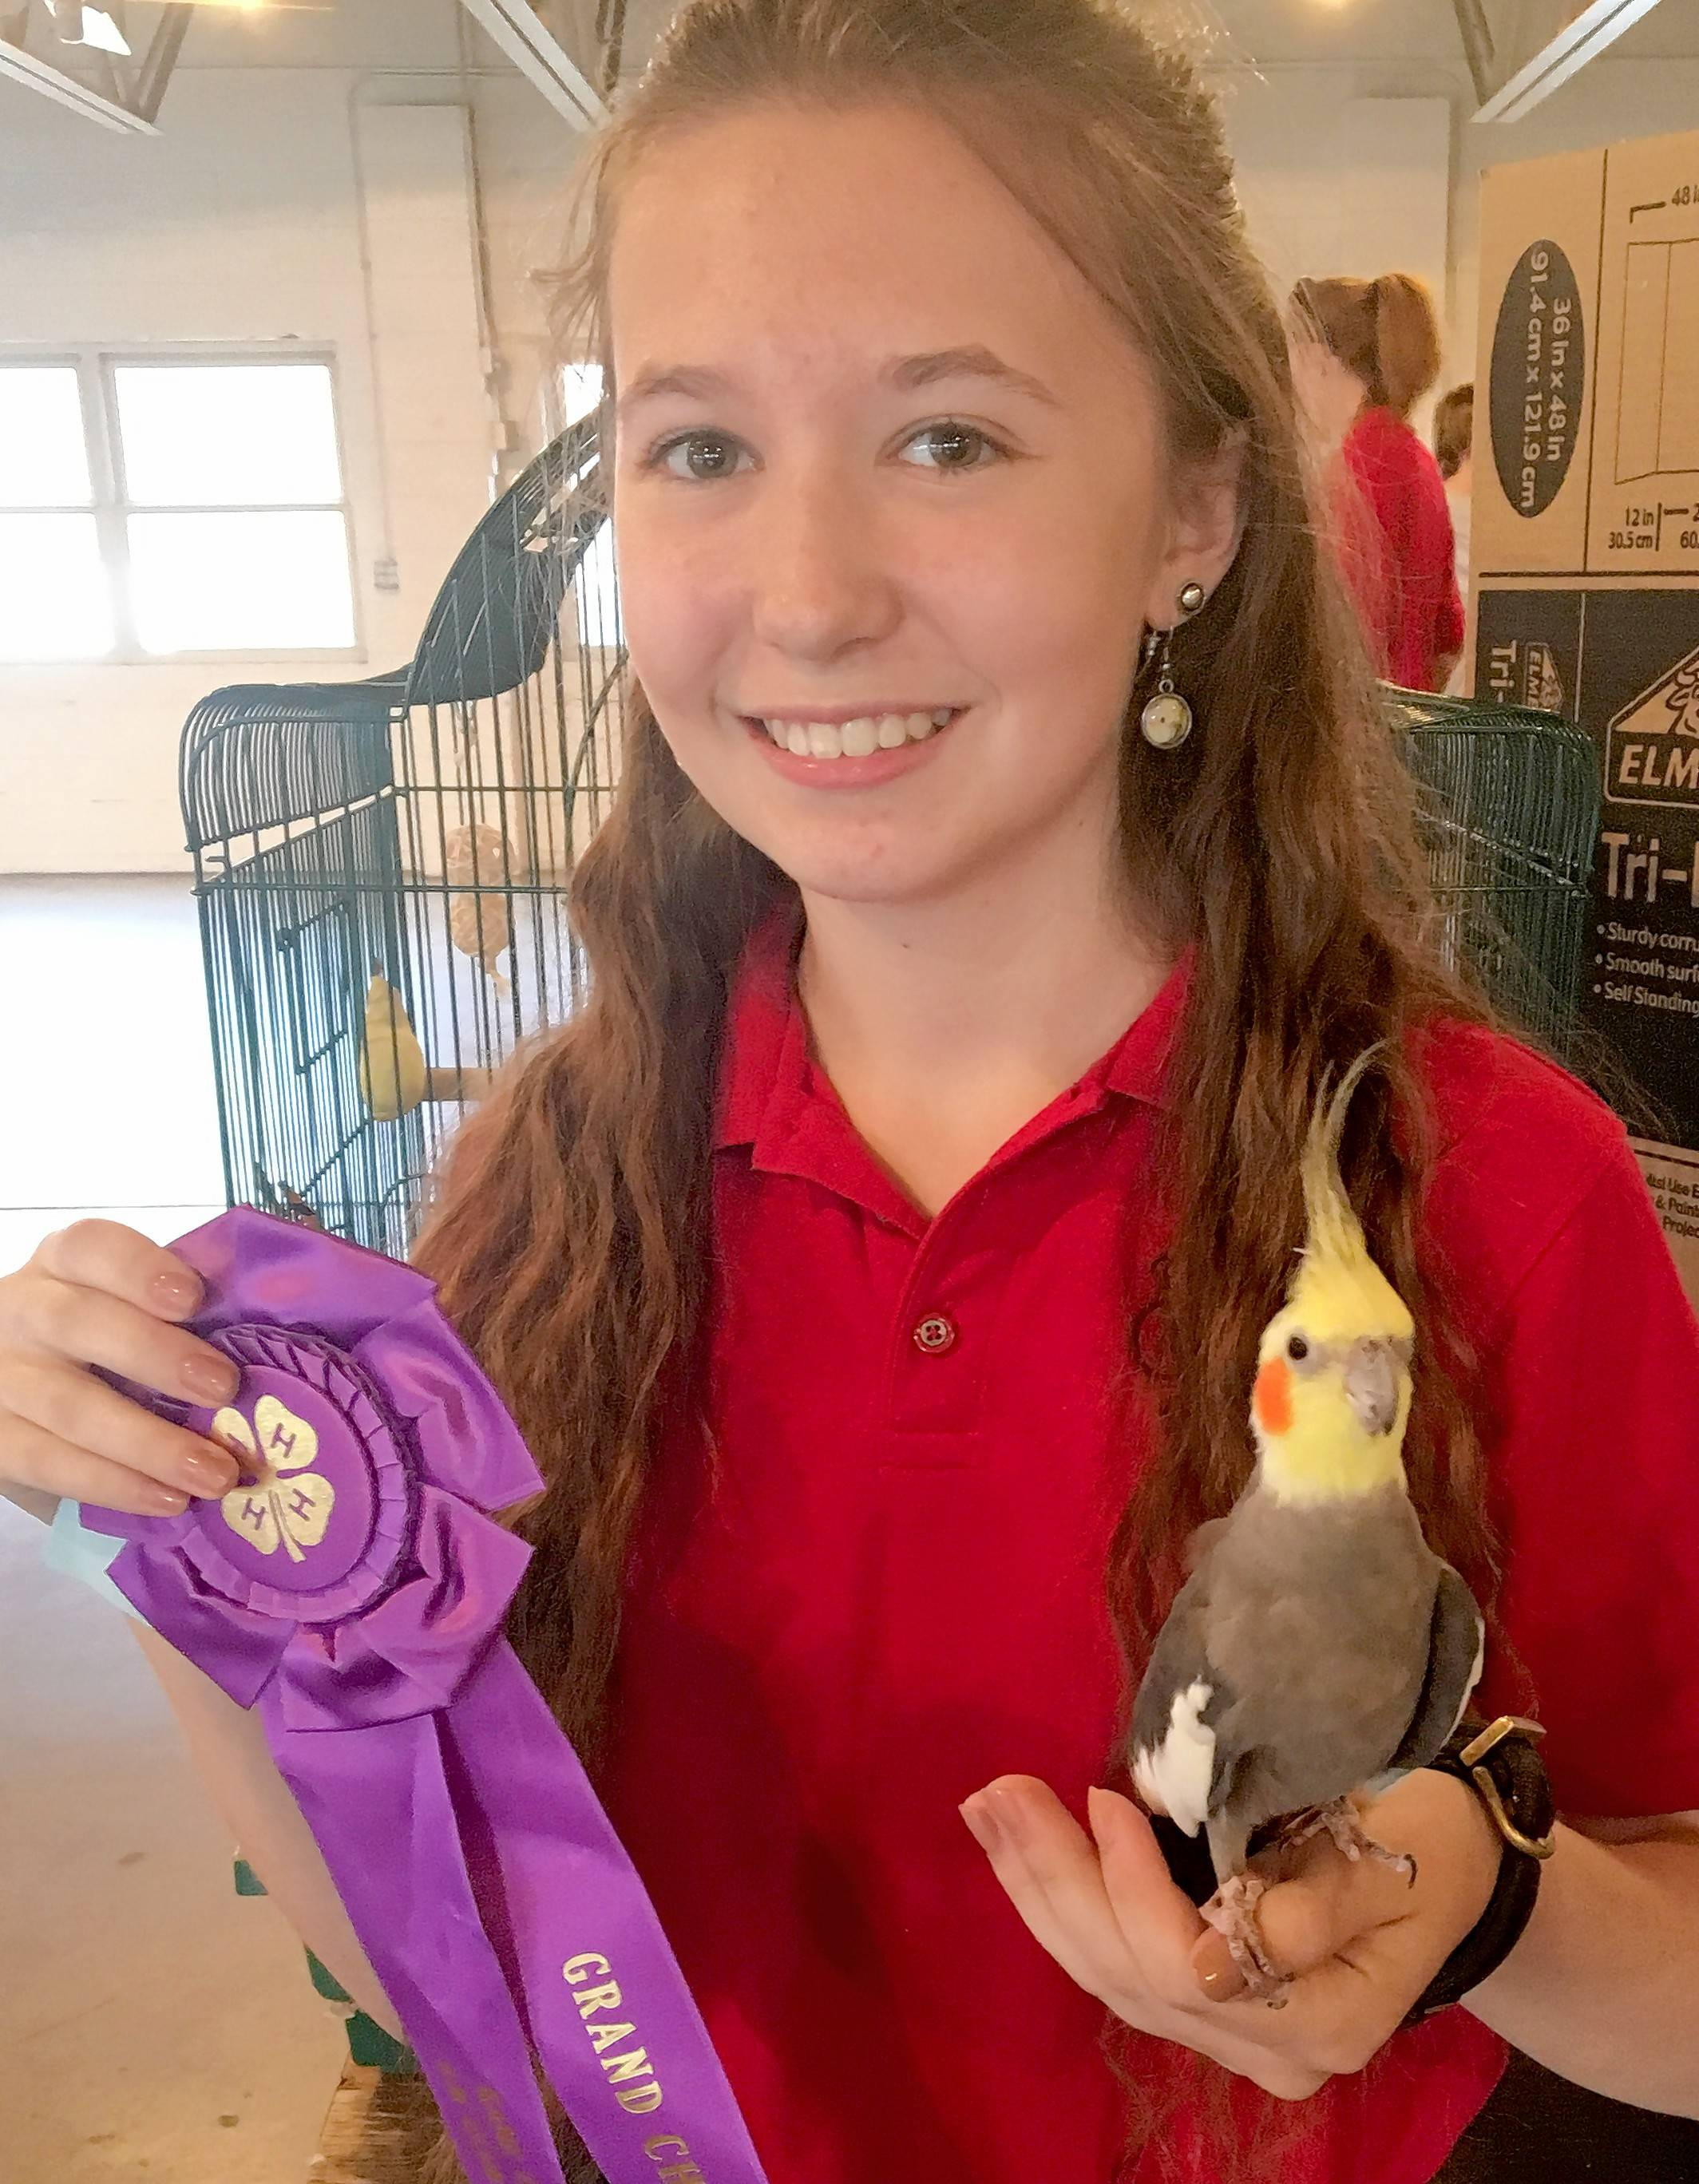 4-H member Dana Connell of St. Charles earns grand champion in the senior class of the Kane County 4-H Small Pets Show in July. With 100-plus project areas, youth can explore sciences, careers, leadership, creative arts, global and civic engagement, healthy living and nutrition, STEM and more.